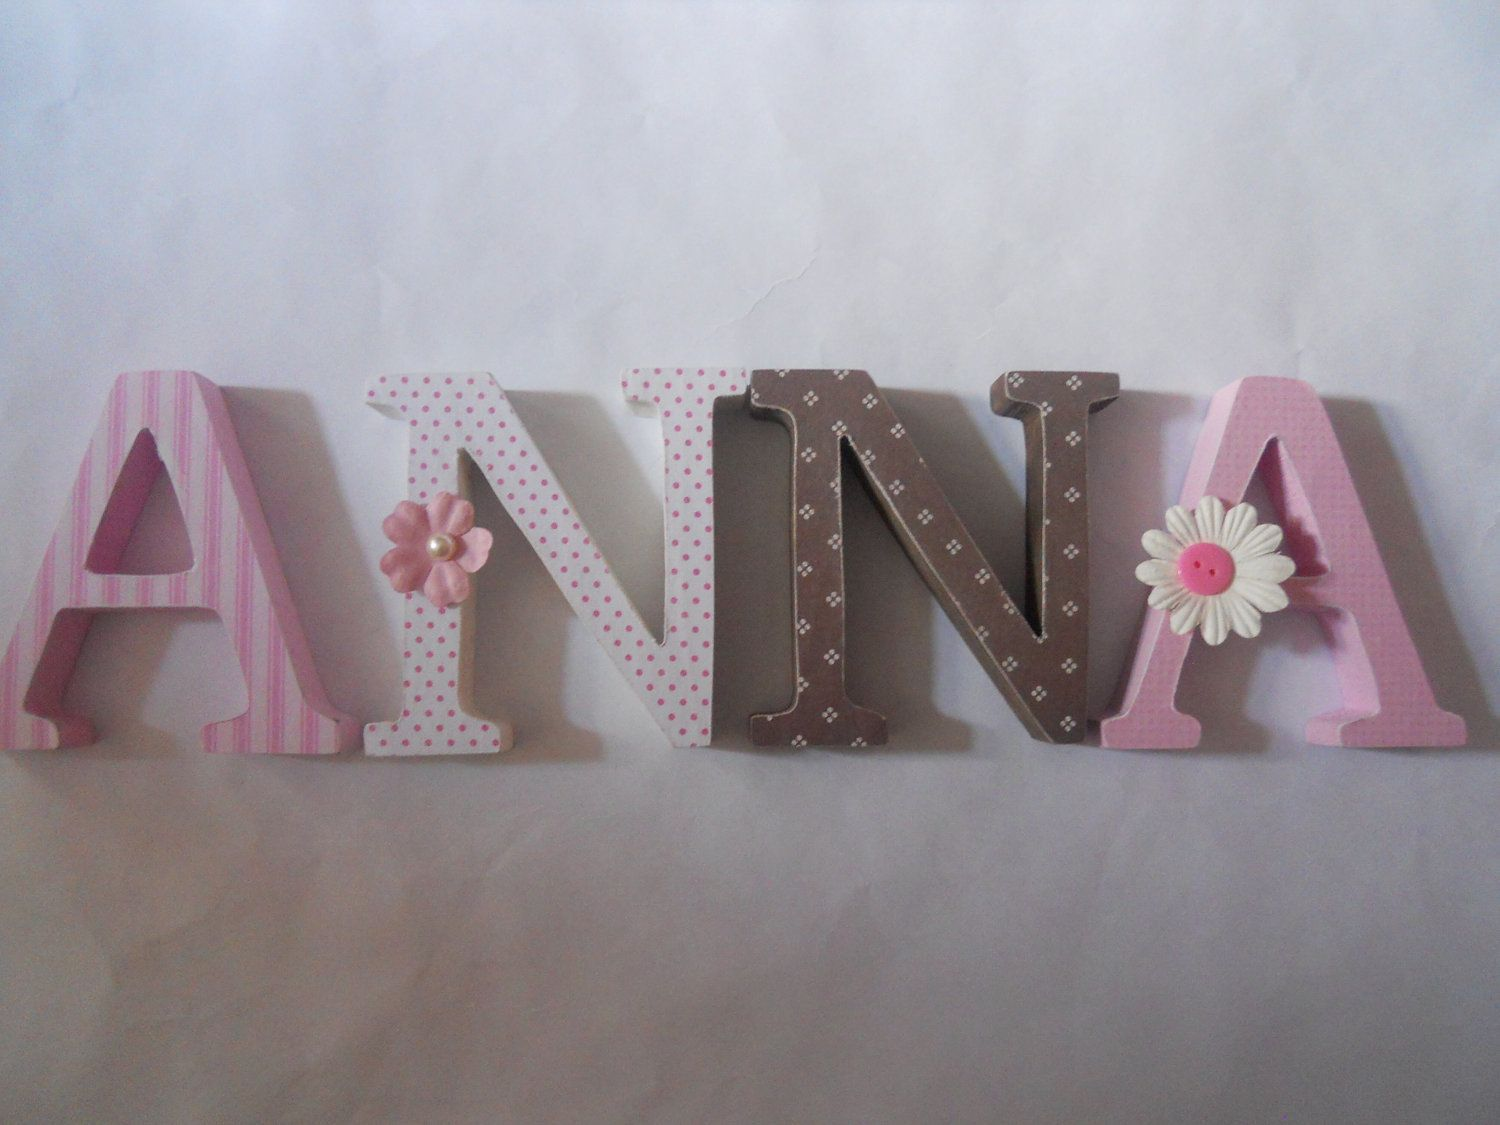 Alphabet Wooden Letters For Nursery In Pink, White And Brown Stand Up, Wall,  Initials